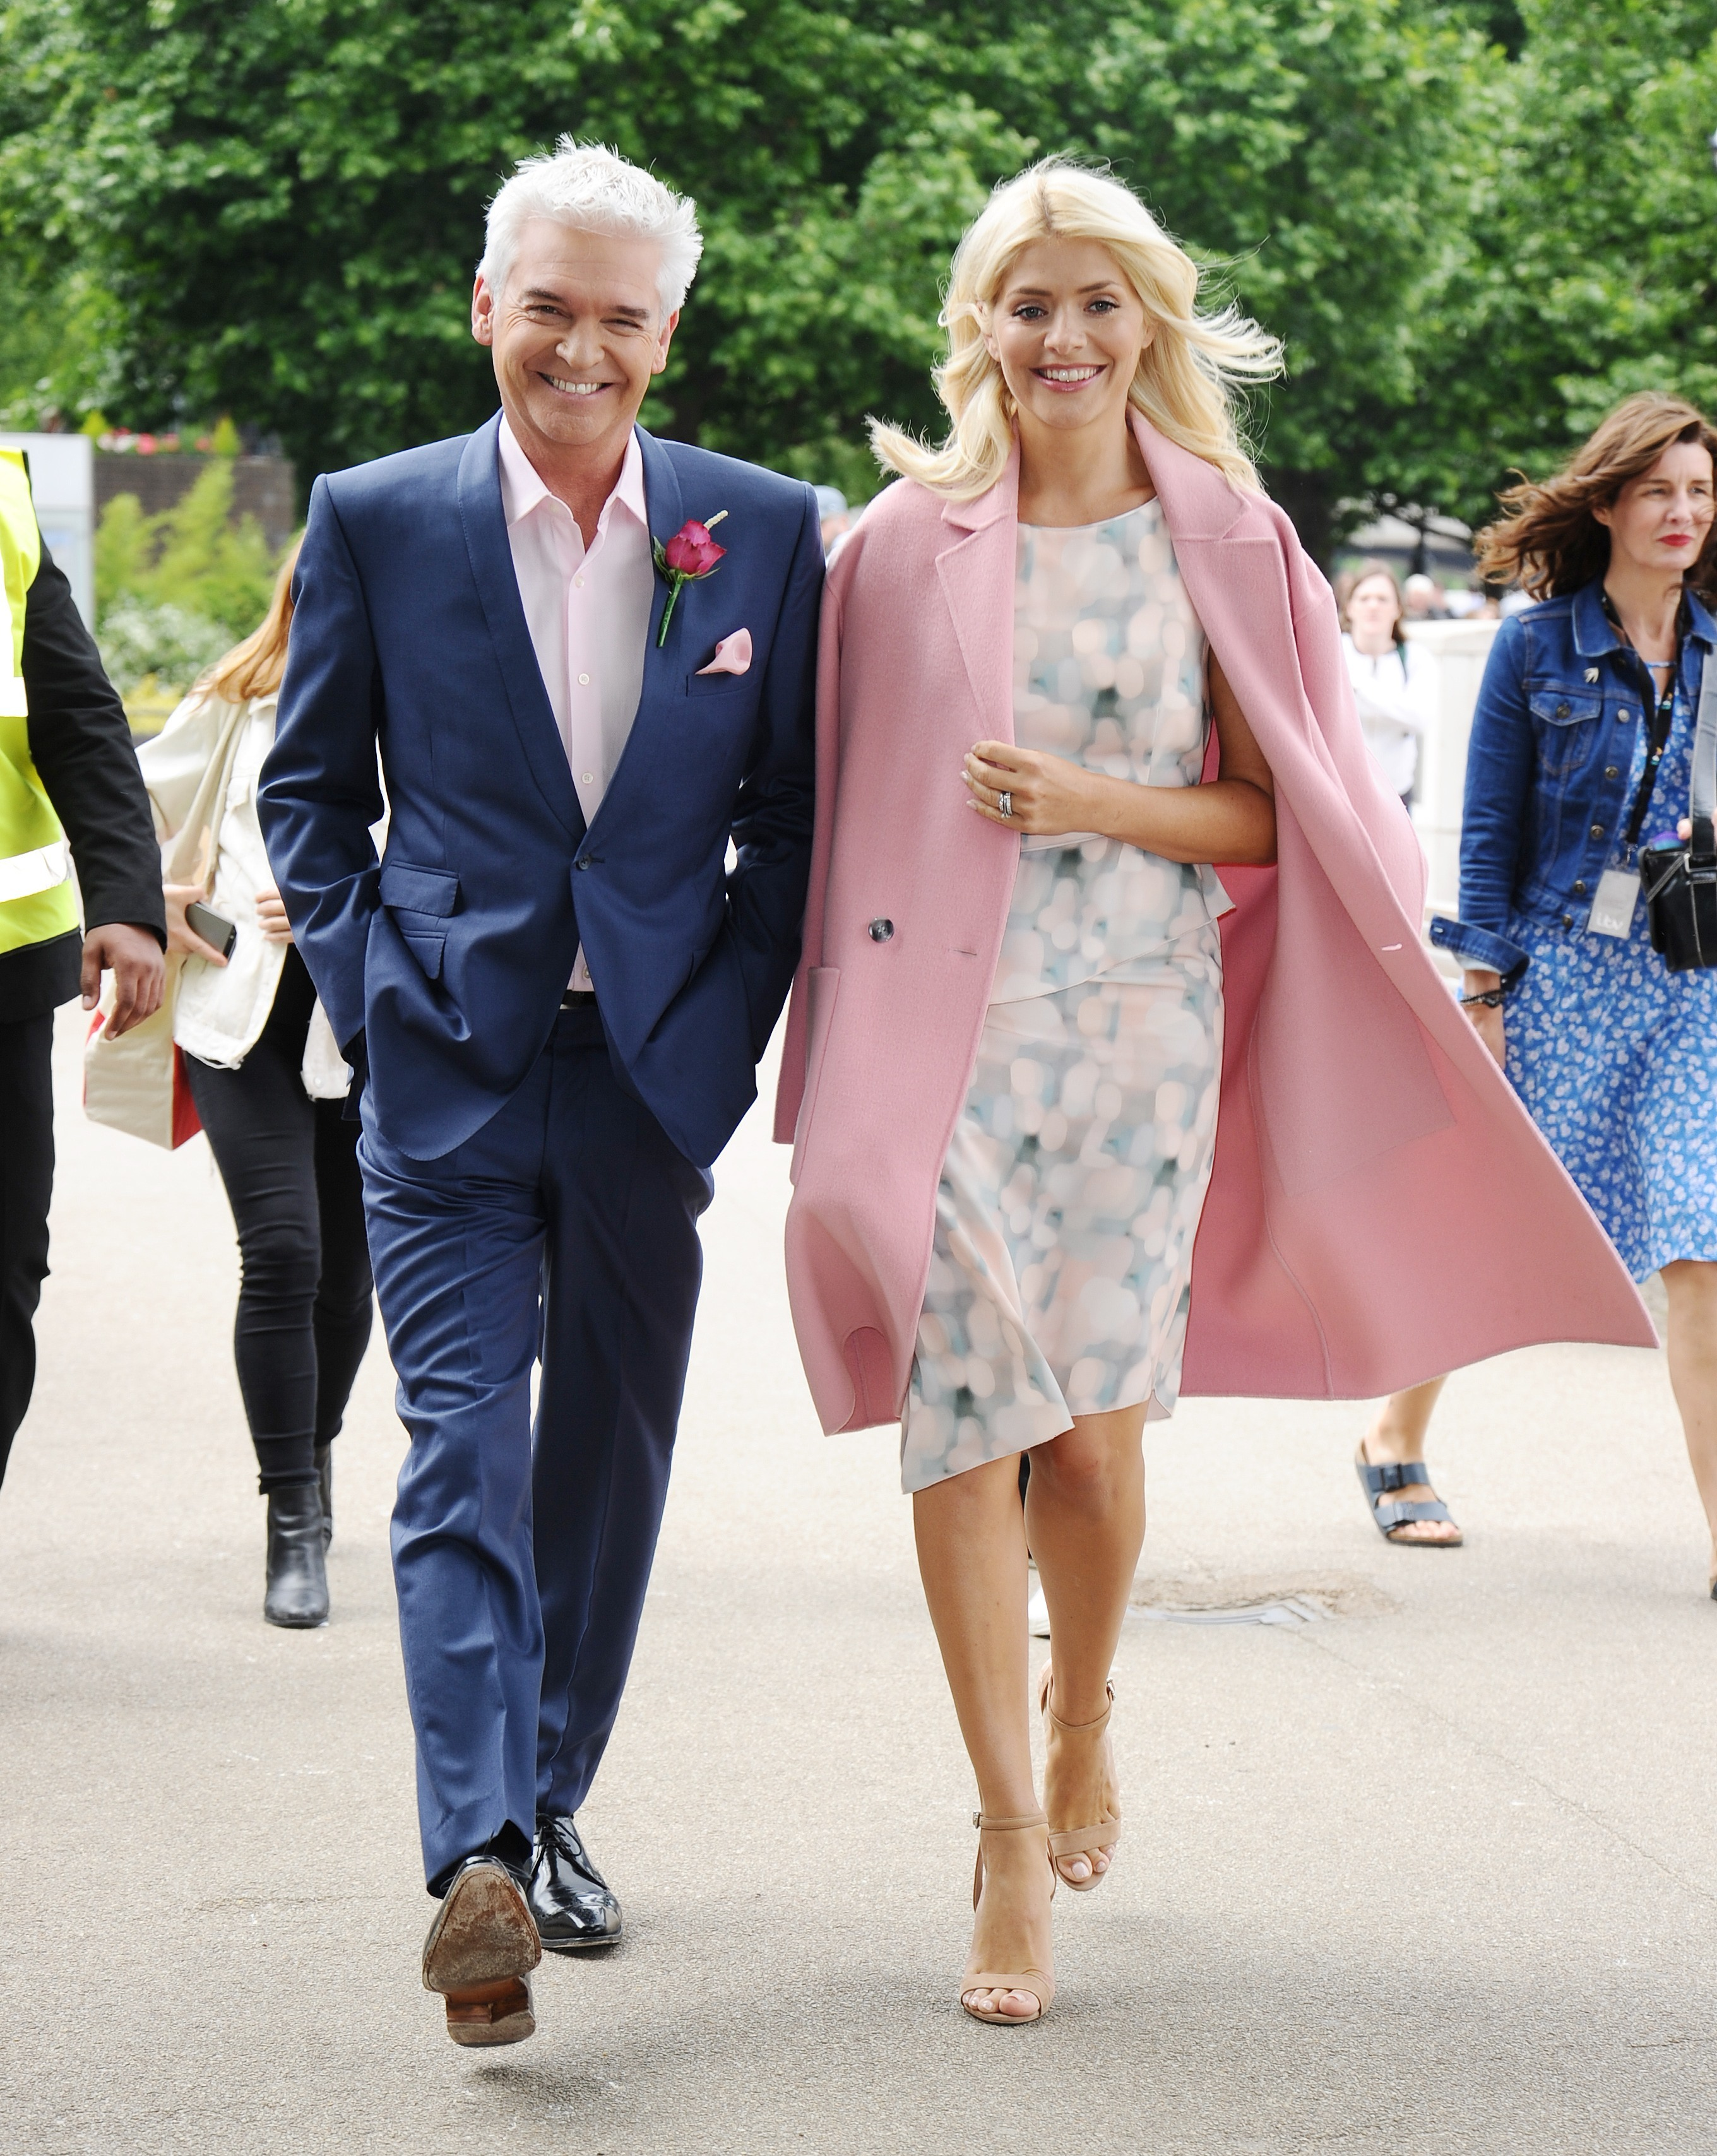 Phillip Schofield With This Morning Co Host Holly Willoughby Filming A Wedding Segment For The Show Last Year Credit Zed Jameson Flynetpictures Uk